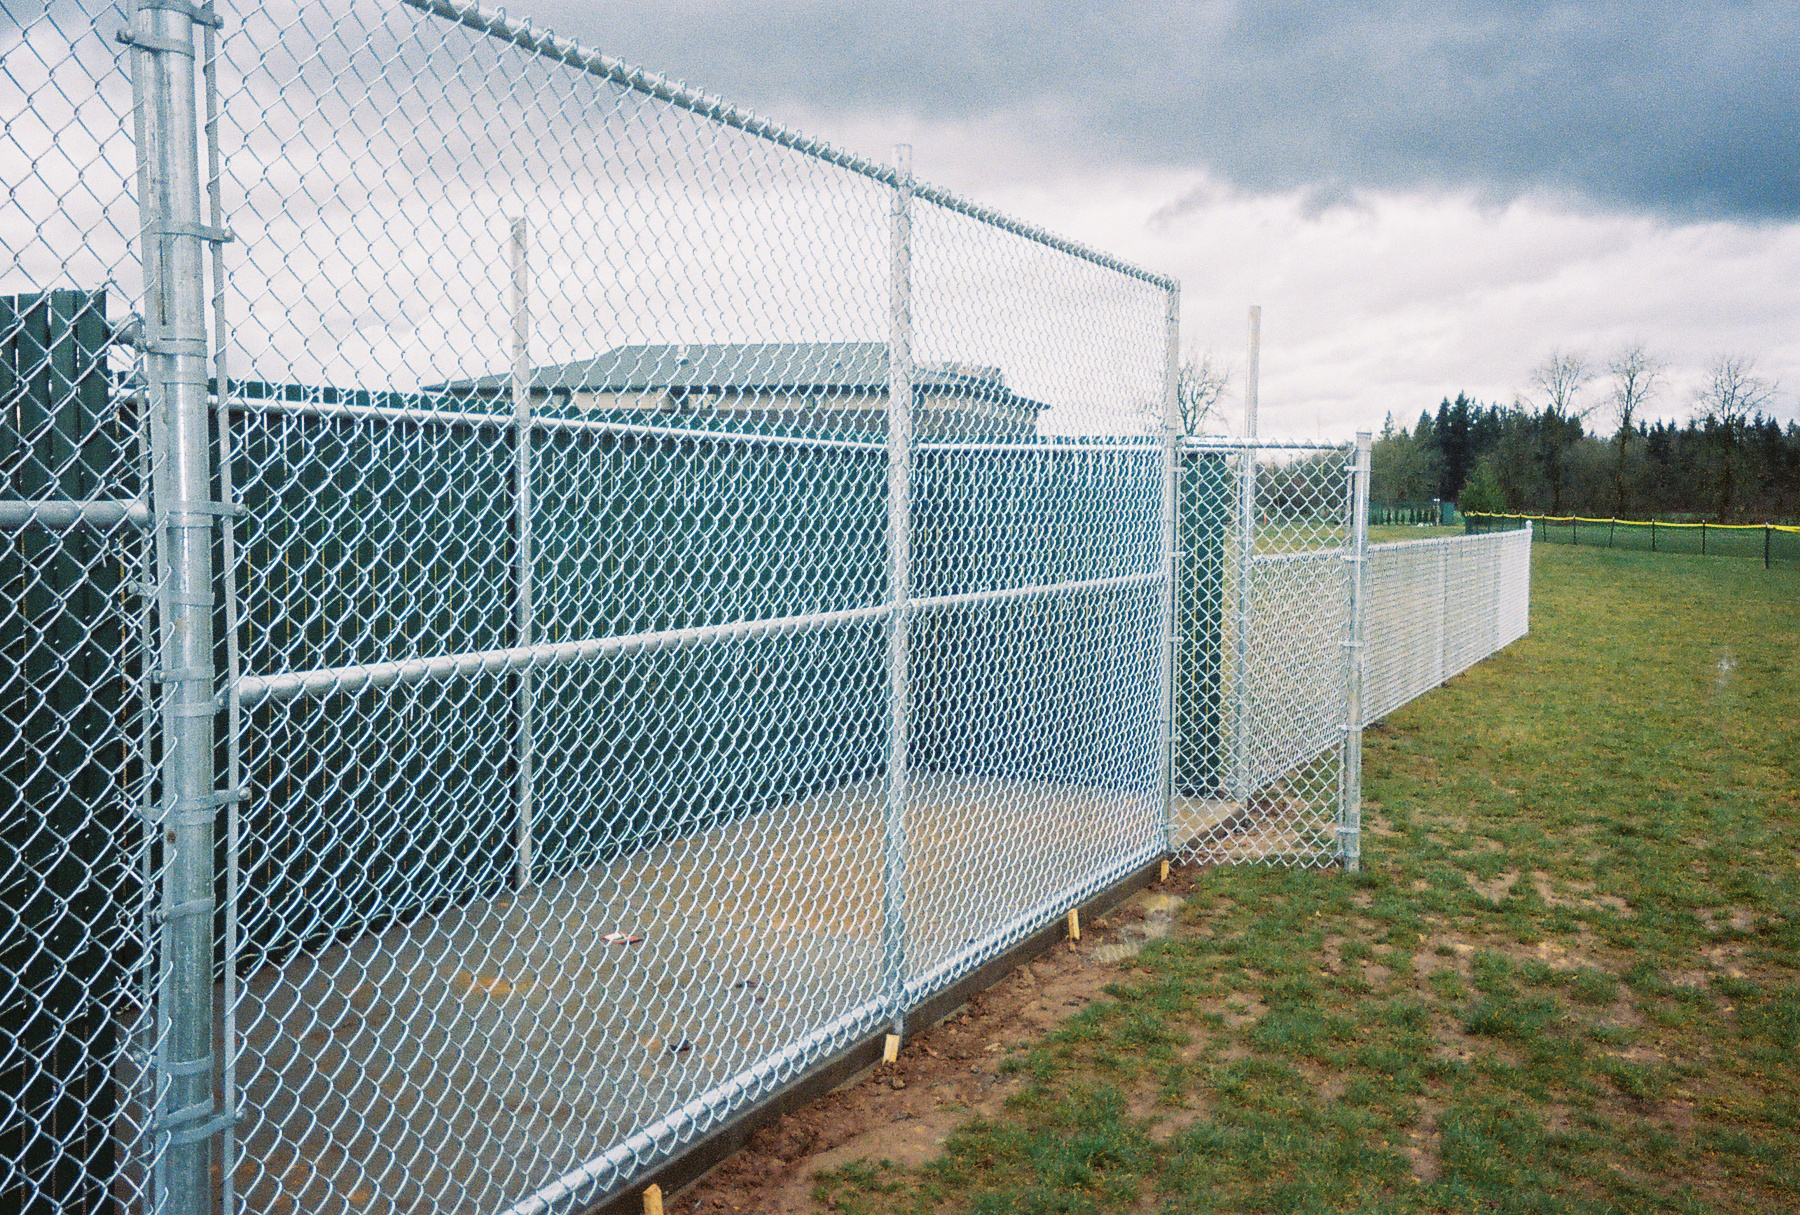 chain link warmup area galvanized chain link pitcher warm area again providing safety for players and spectators contact vancouver